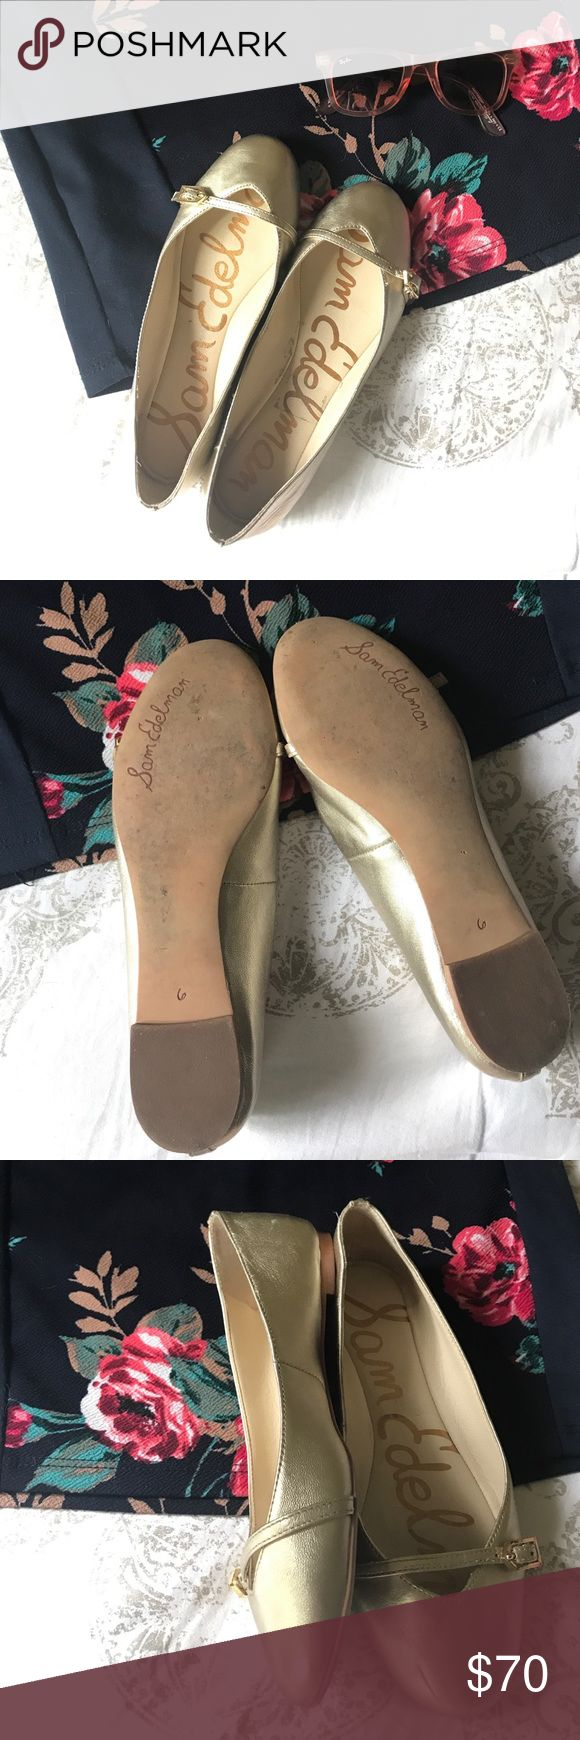 """{Sam Edelman} Gold Ballet slippers Gold Sam Edelman buckle flats. Very cute with buckle detail! Gently worn, without box.                                             -leather buckle detail                                                             -.25"""" approximate heel                                                              -easy to slip on                                                                    -man made leather Sam Edelman Shoes Flats & Loafers"""